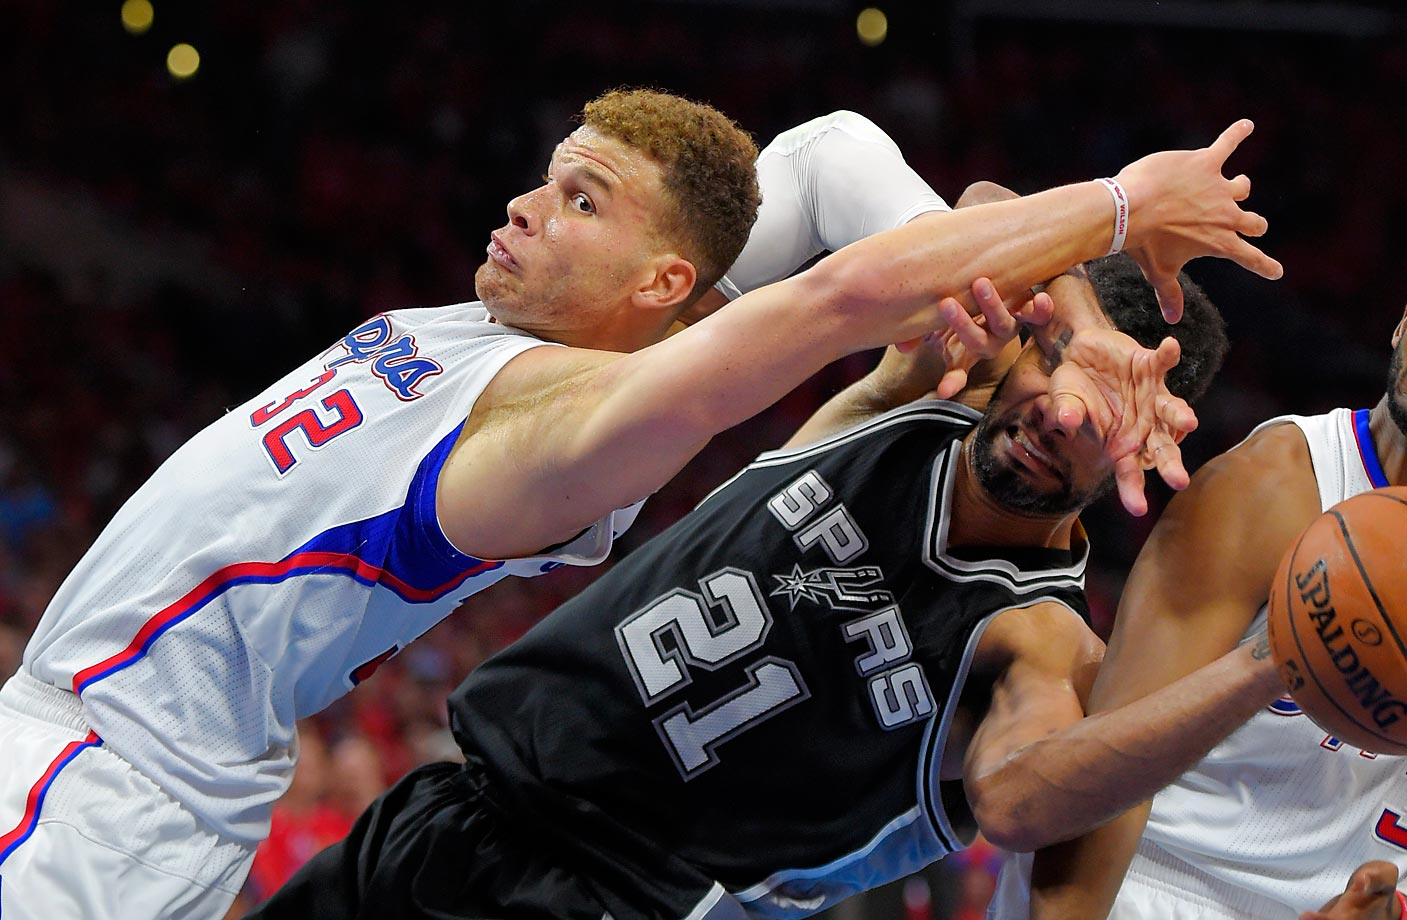 Blake Griffin of the Clippers and Tim Duncan of the Spurs battle for a rebound during Game 7 in a first-round playoff series.